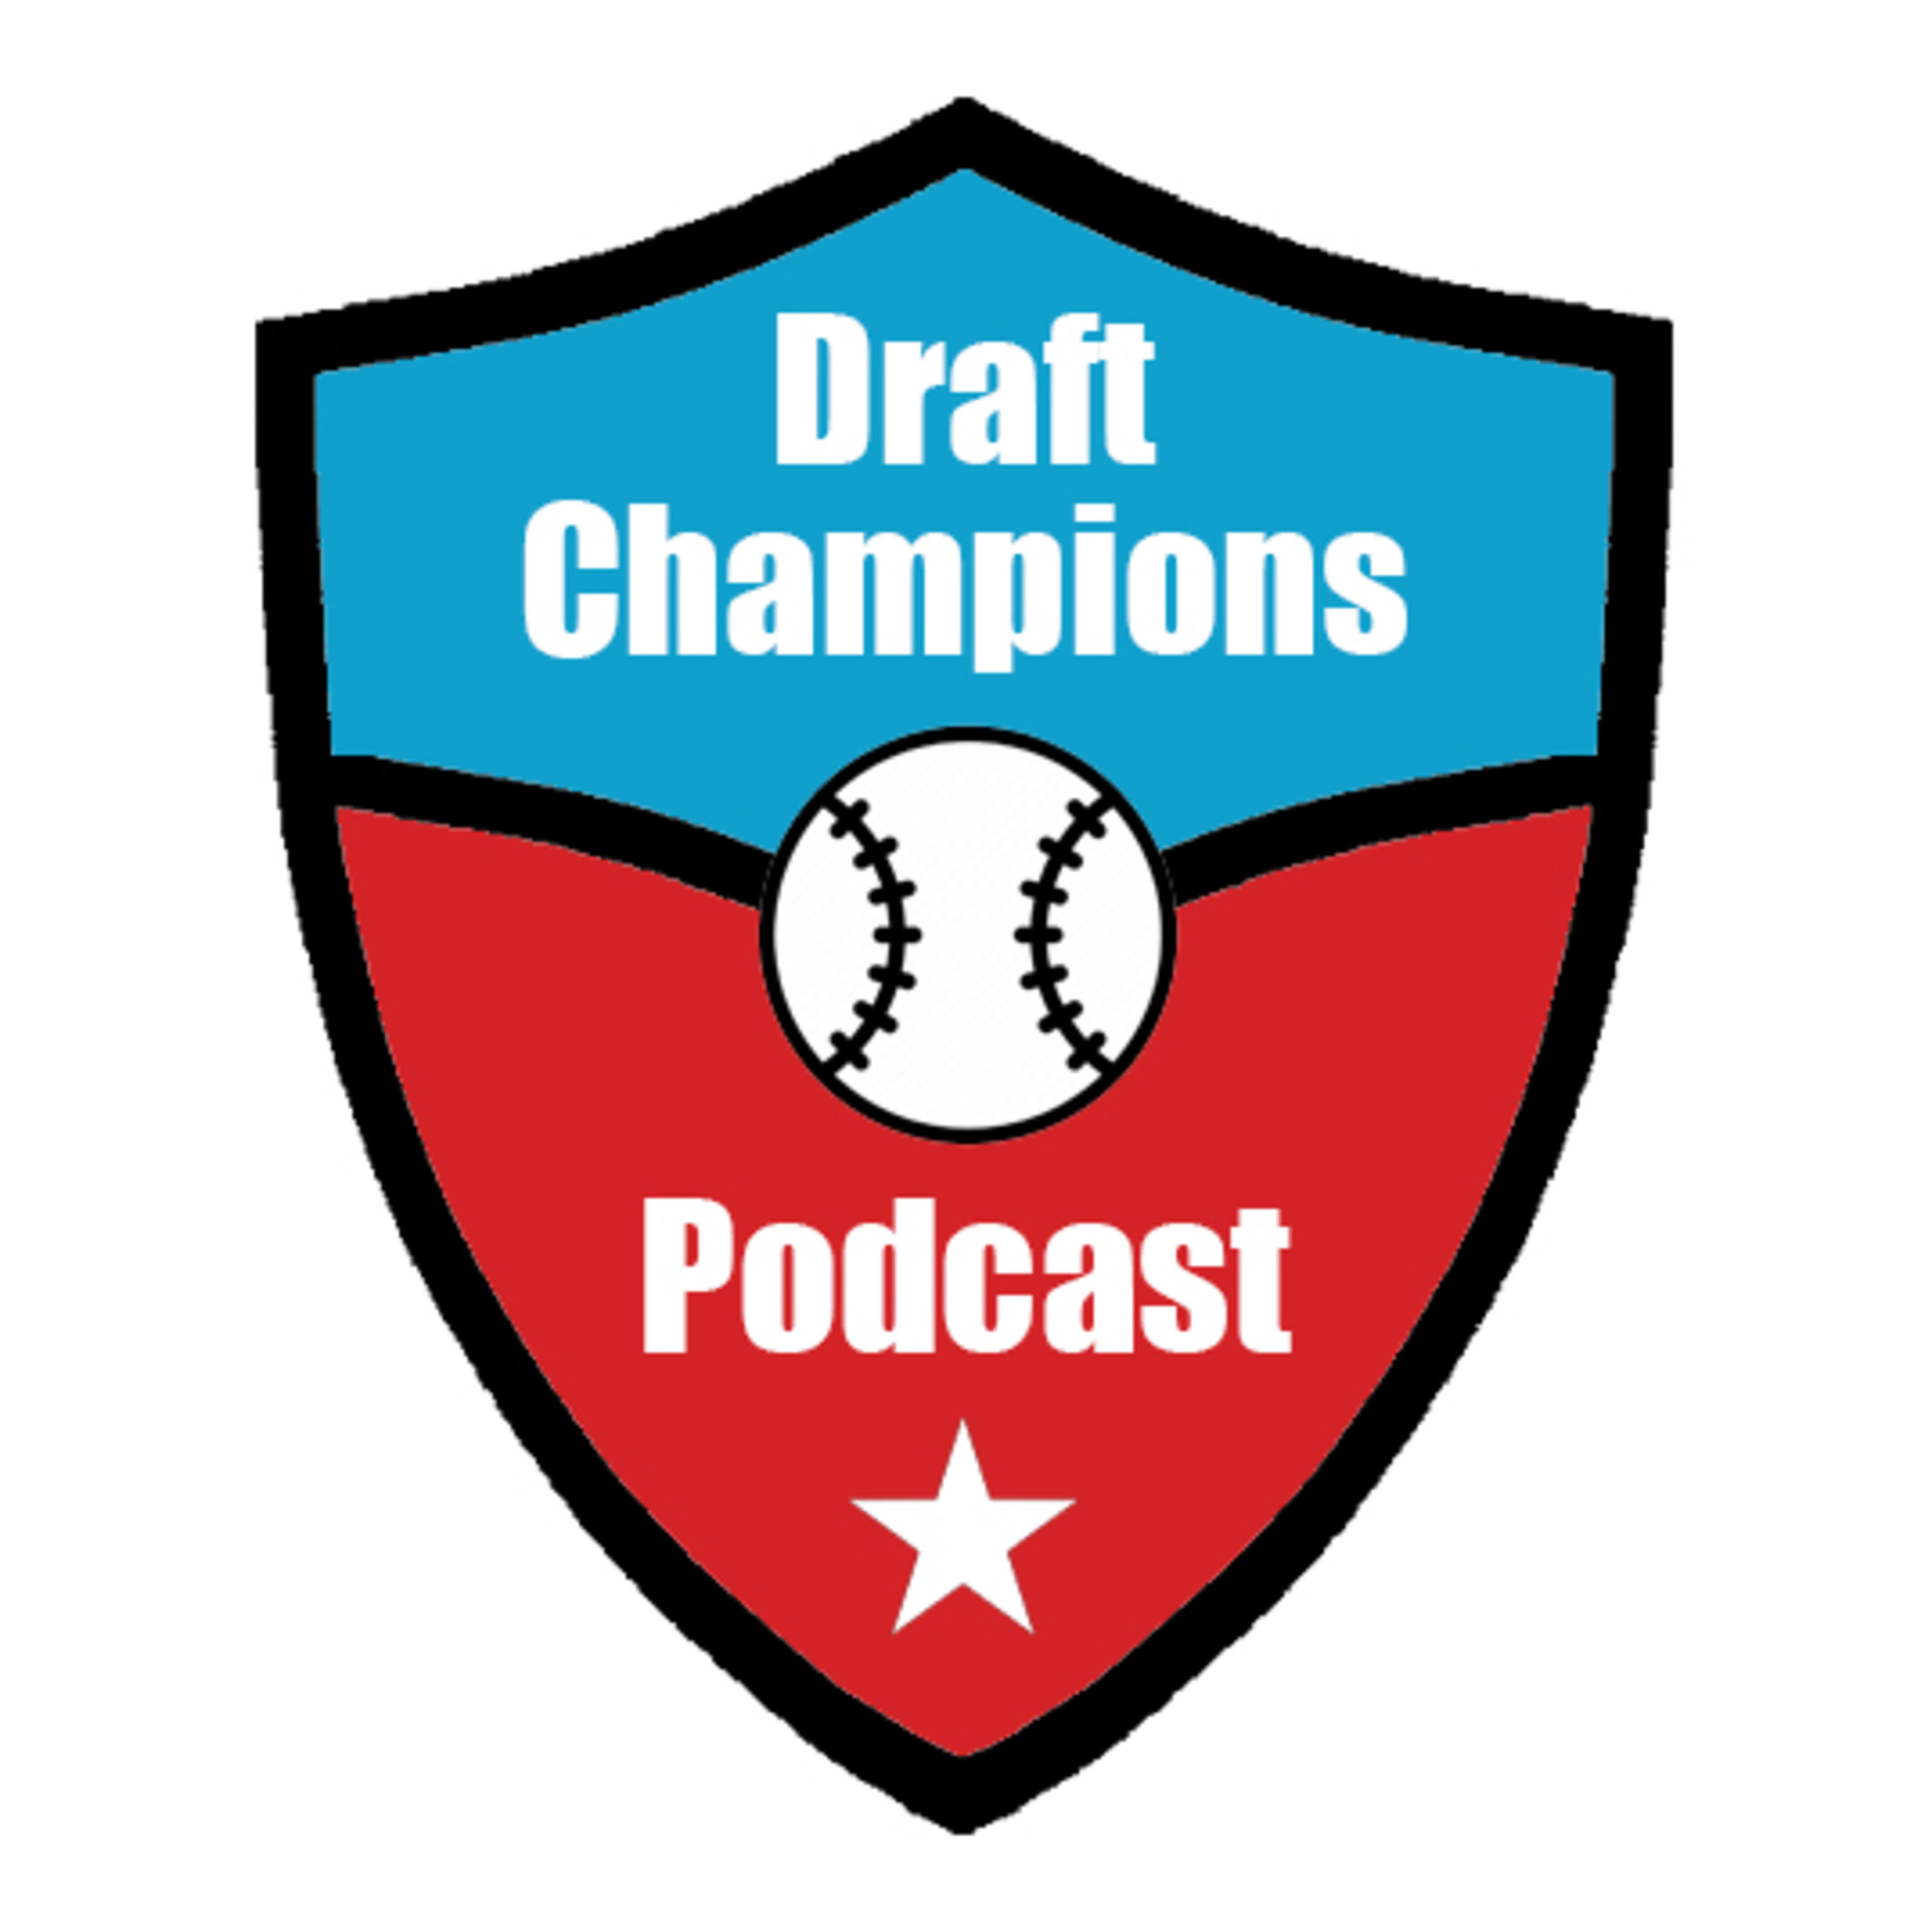 Draft Champions Podcast